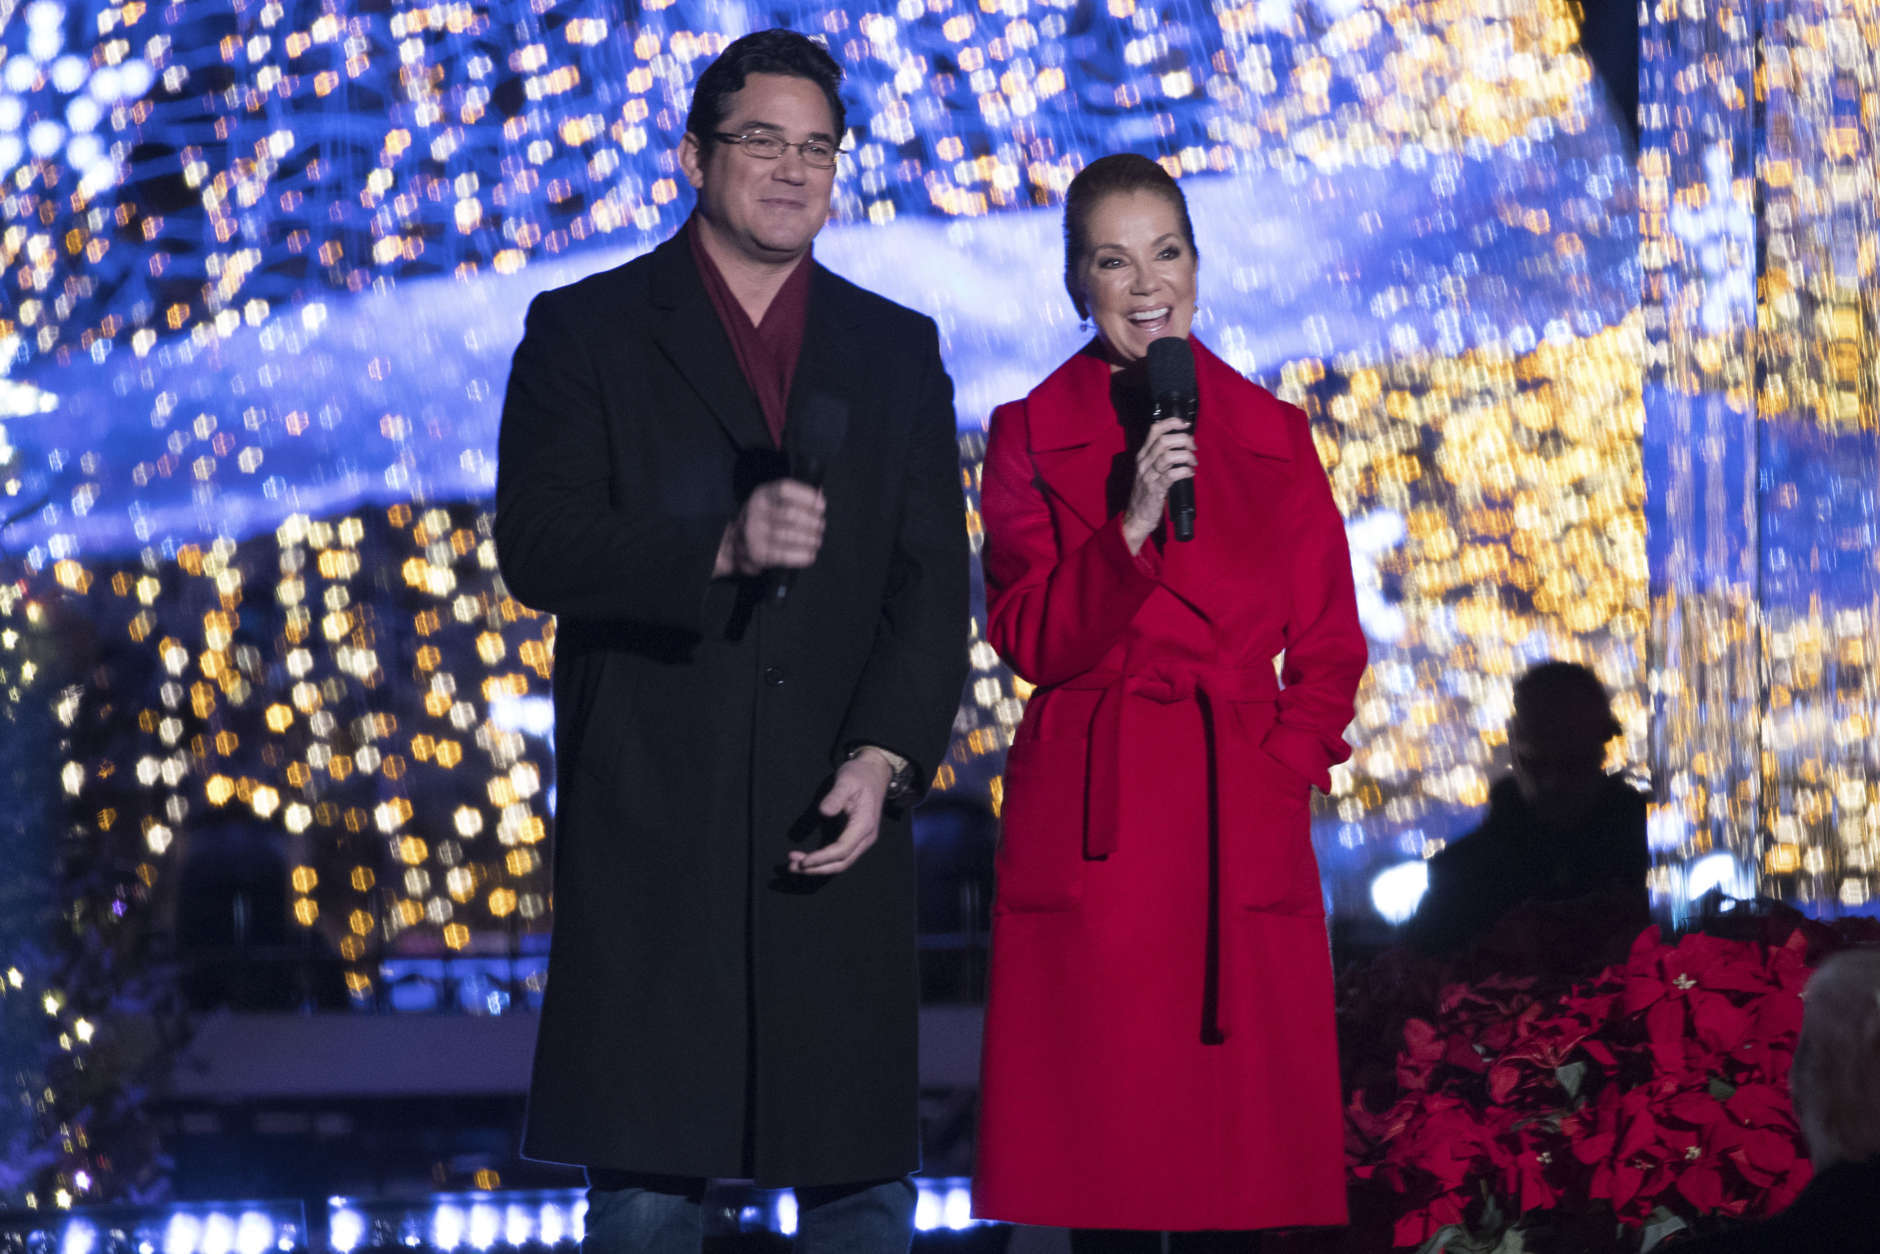 Hosts Kathie Lee Gifford and actor Dean Cain speak during the lighting ceremony for the 2017 National Christmas Tree on the Ellipse near the White House, Thursday, Nov. 30, 2017, in Washington. (AP Photo/Andrew Harnik)